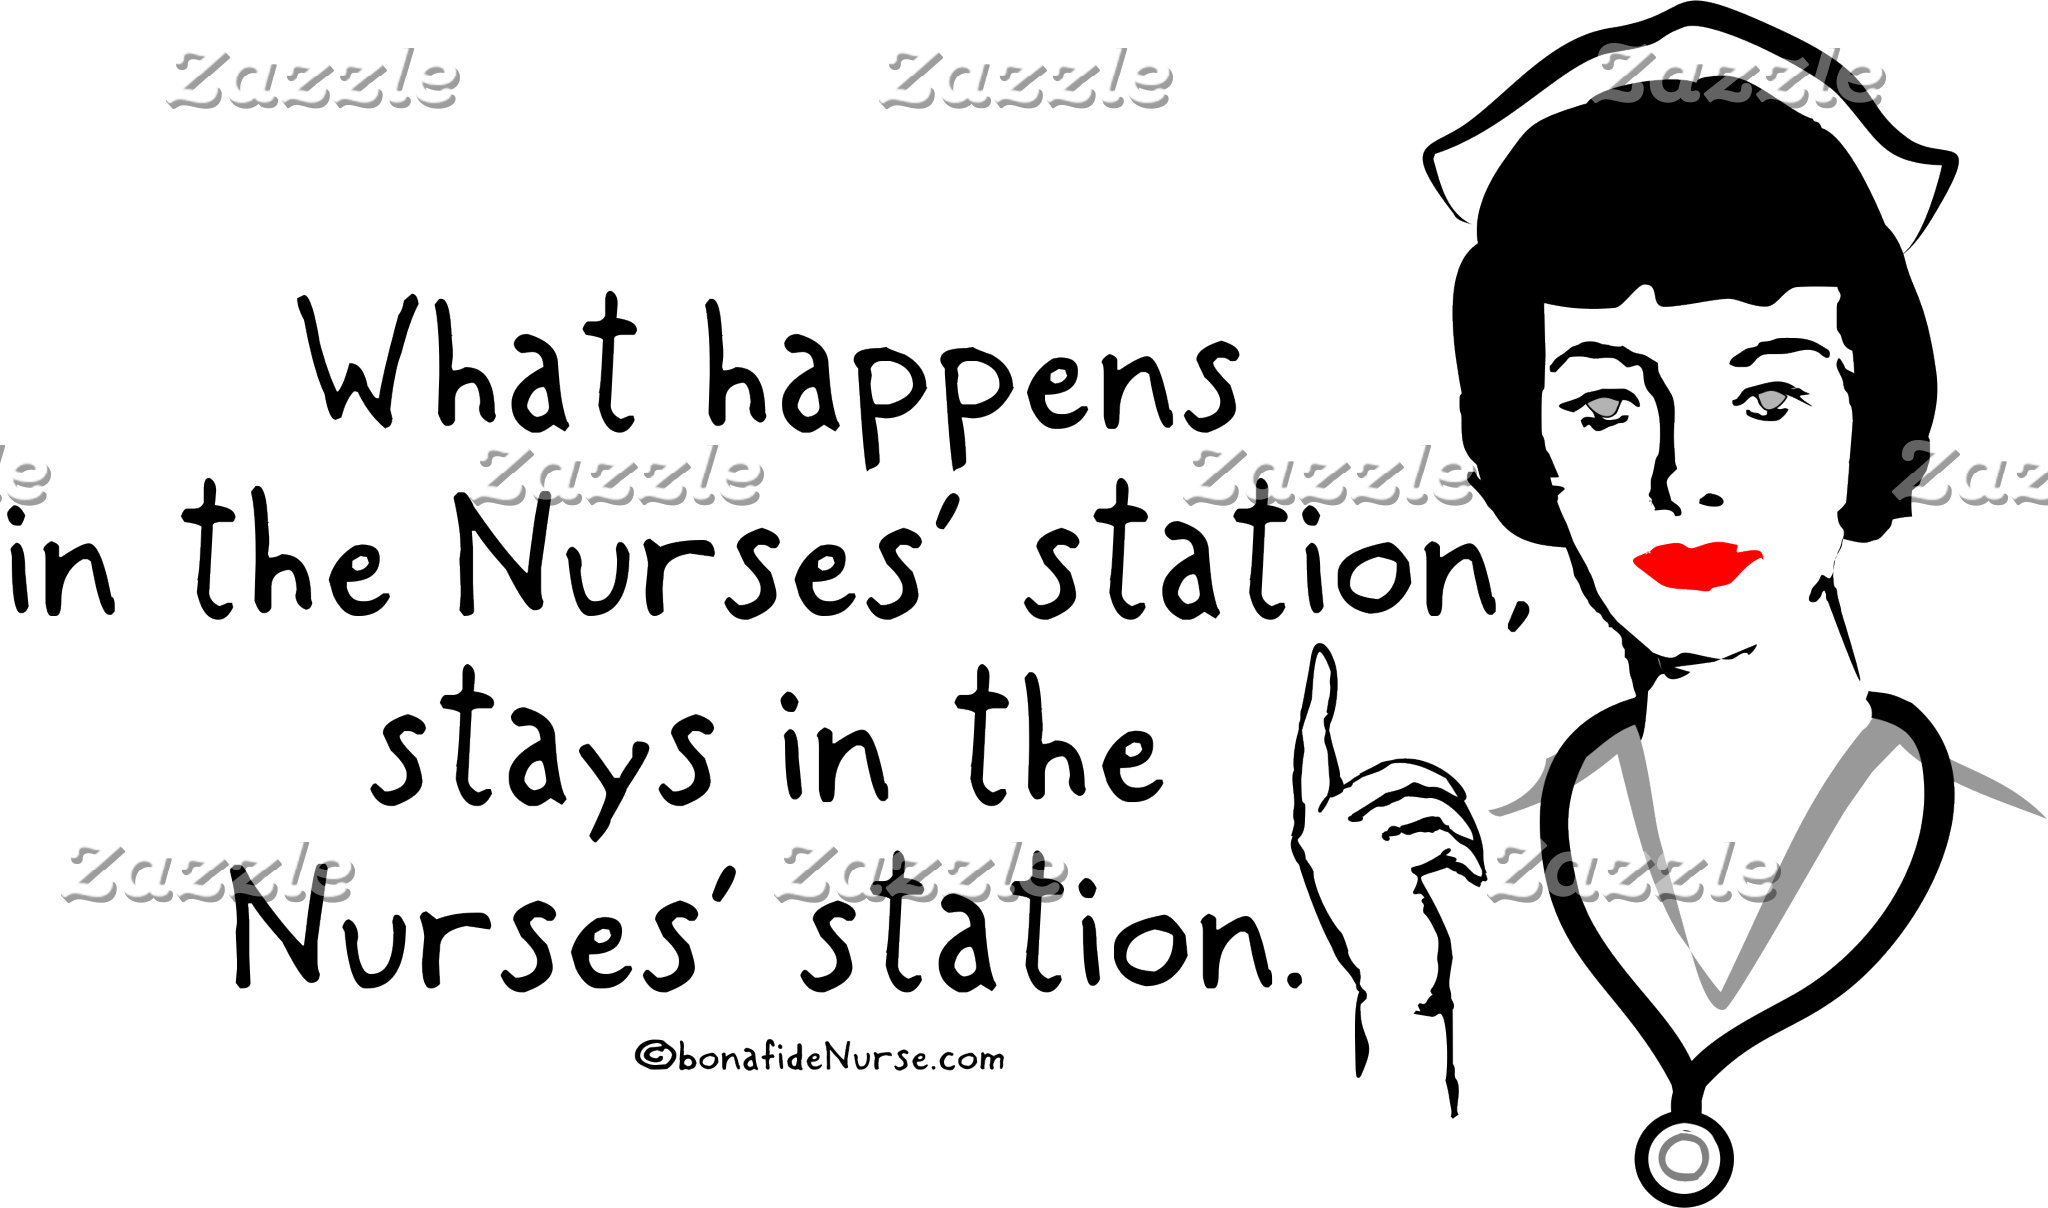 What Happens in the Nurses Station